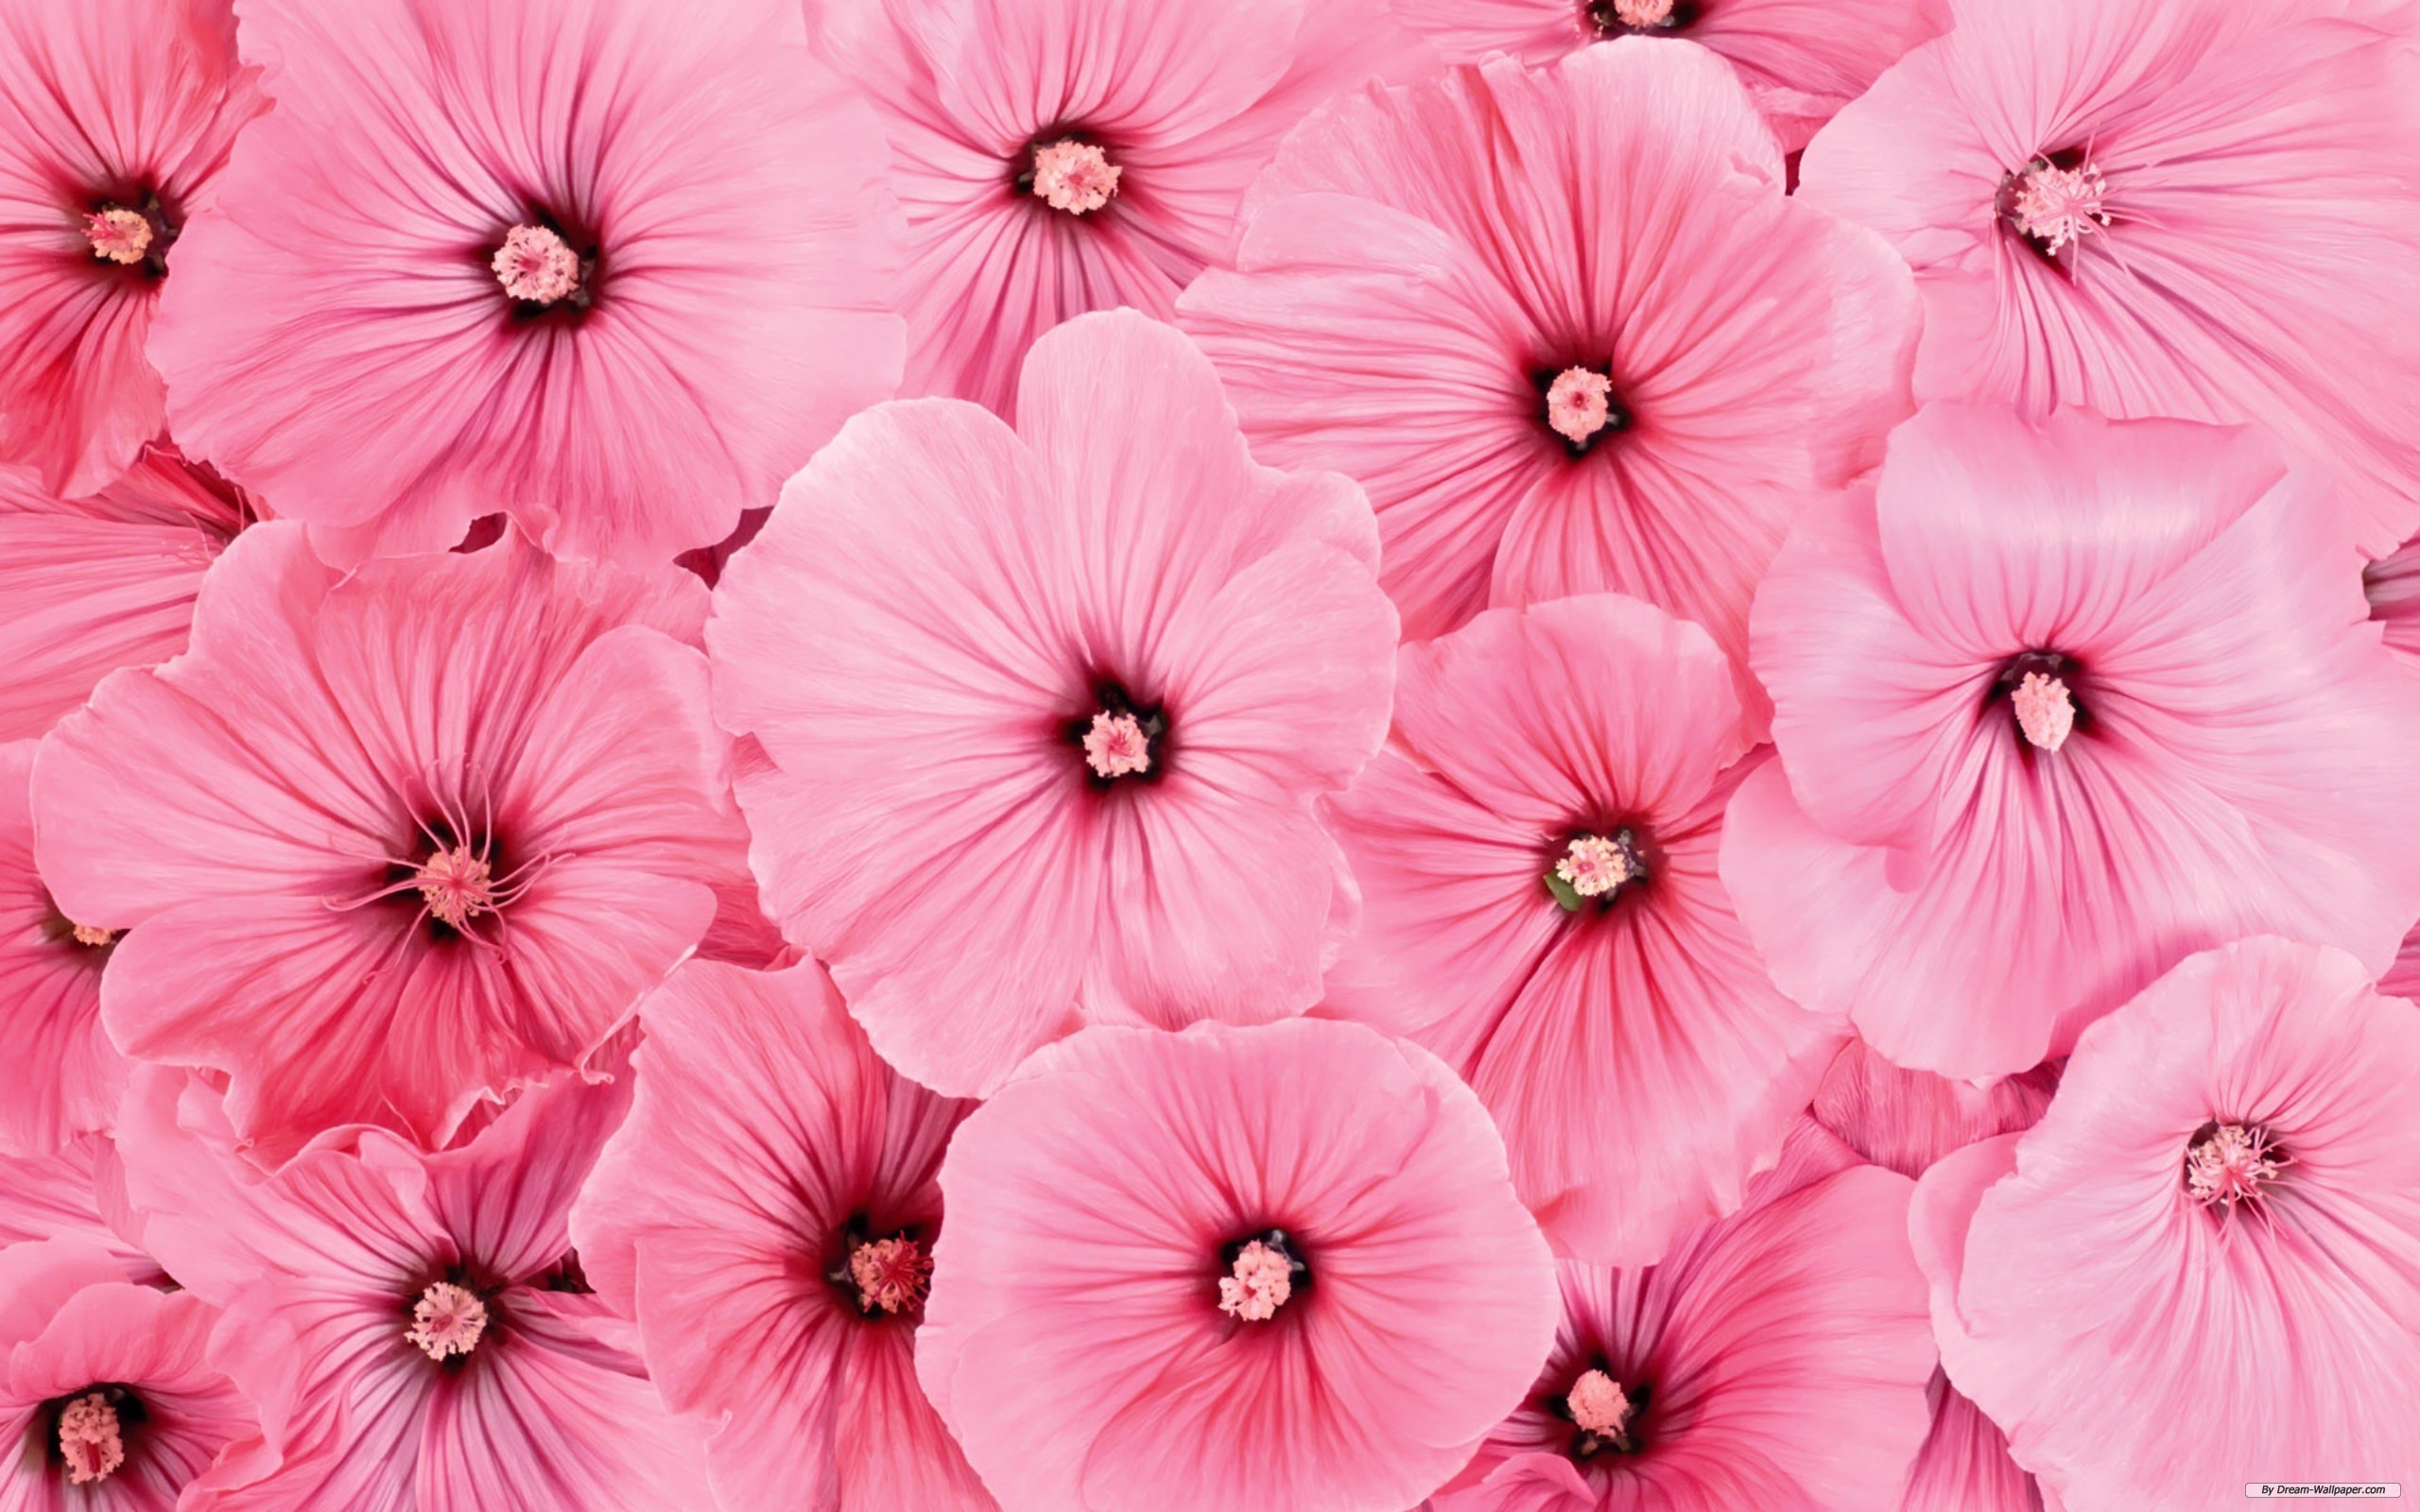 Pink Flowers Backgrounds (PC, Mobile, Gadgets) Compatible | 2560x1600 px